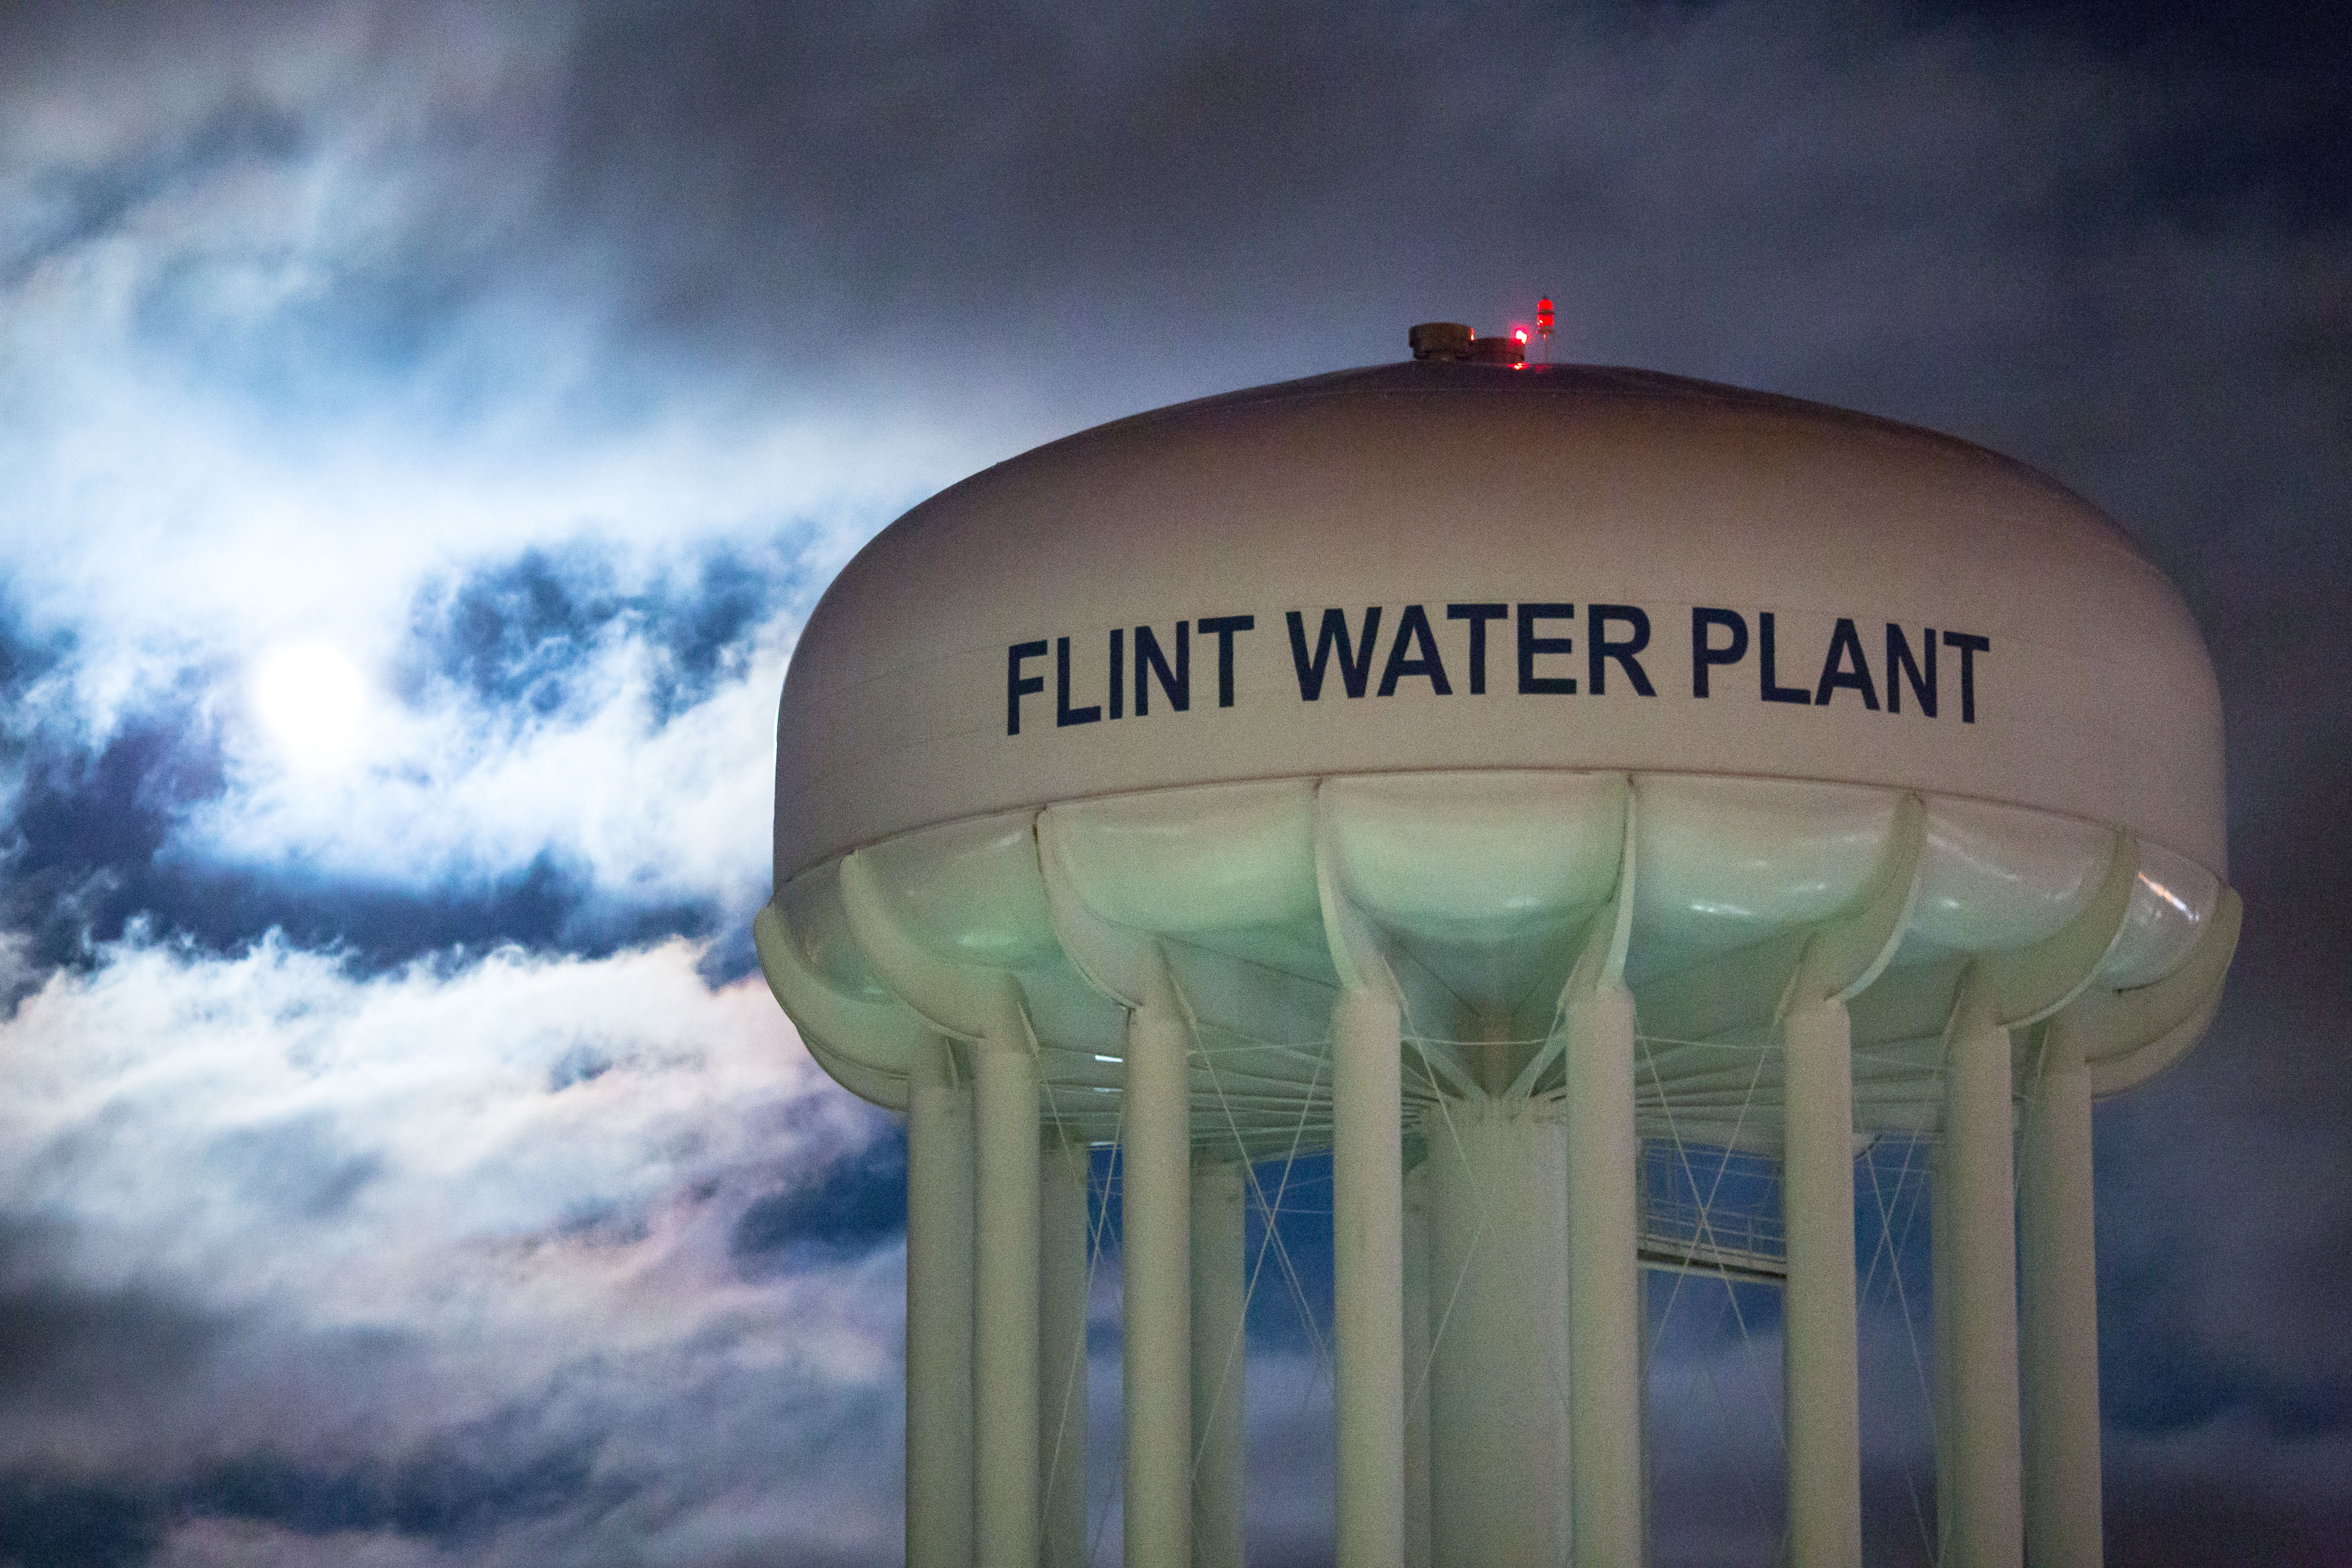 Alabama Senate Race >> More water problems in Flint, Michigan - CBS News